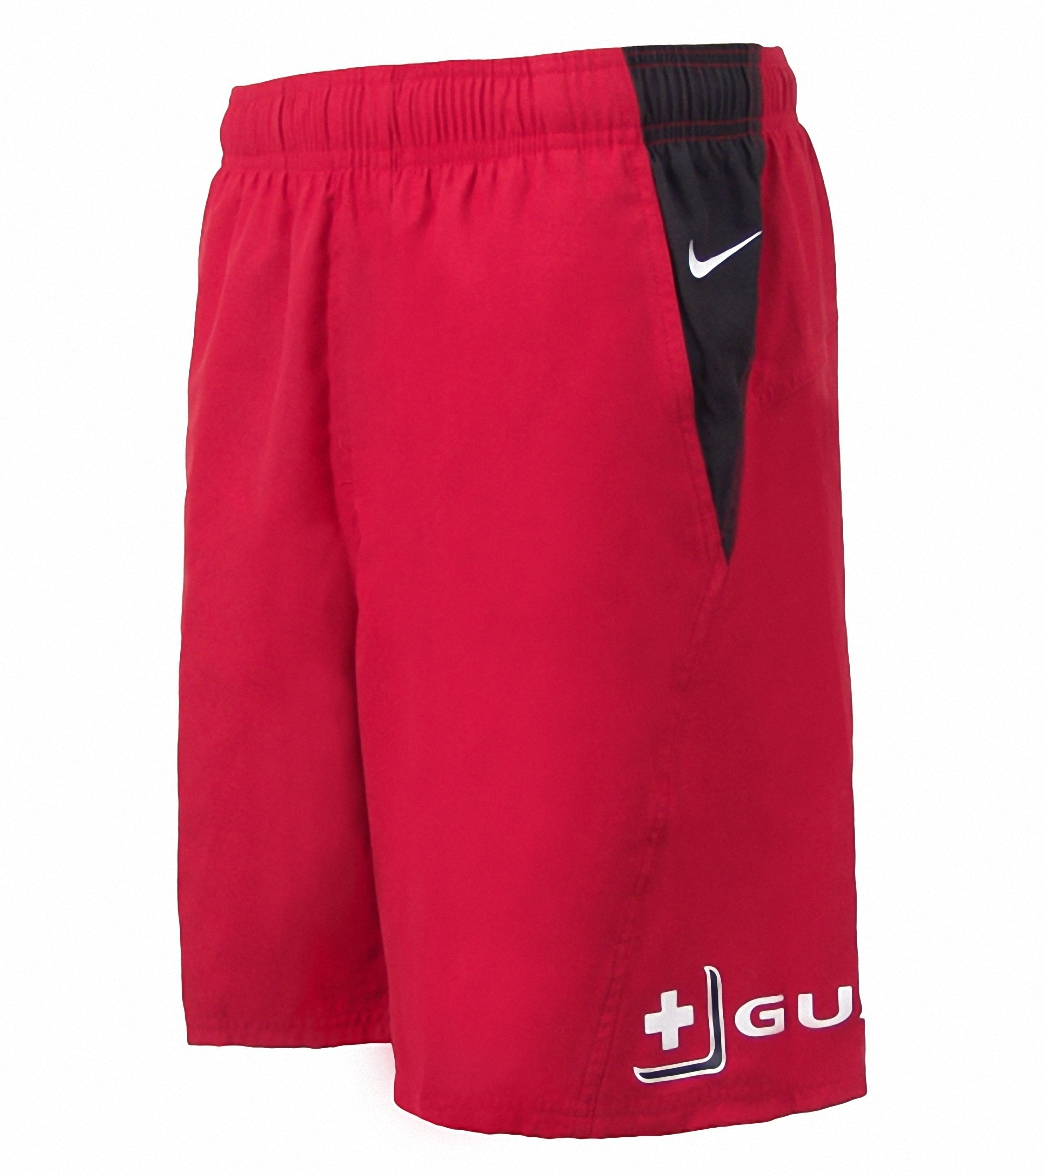 932ad59e599a Nike Swim Men s Lifeguard Short at SwimOutlet.com